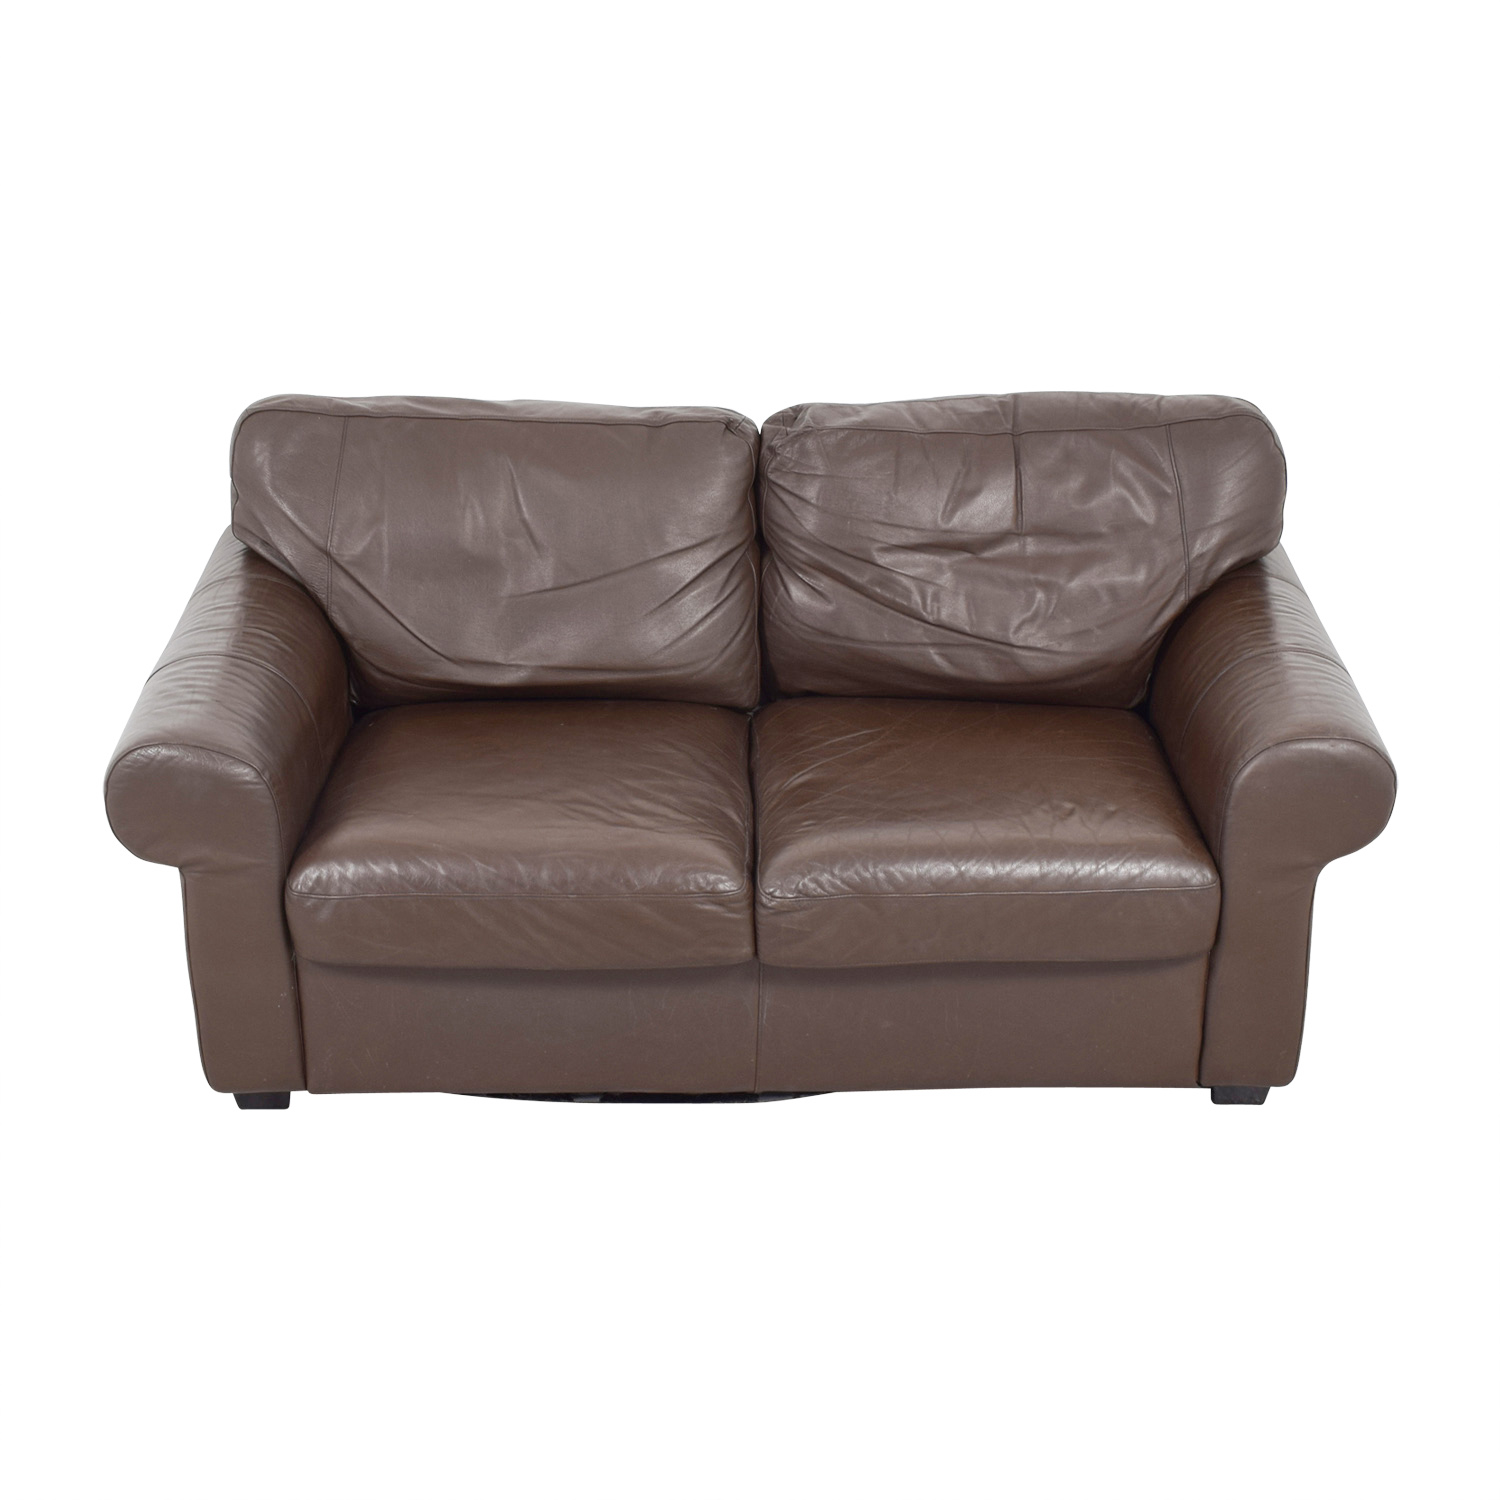 Fabulous 72 Off Ikea Ikea Timsfors Leather Brown Loveseat Sofas Onthecornerstone Fun Painted Chair Ideas Images Onthecornerstoneorg